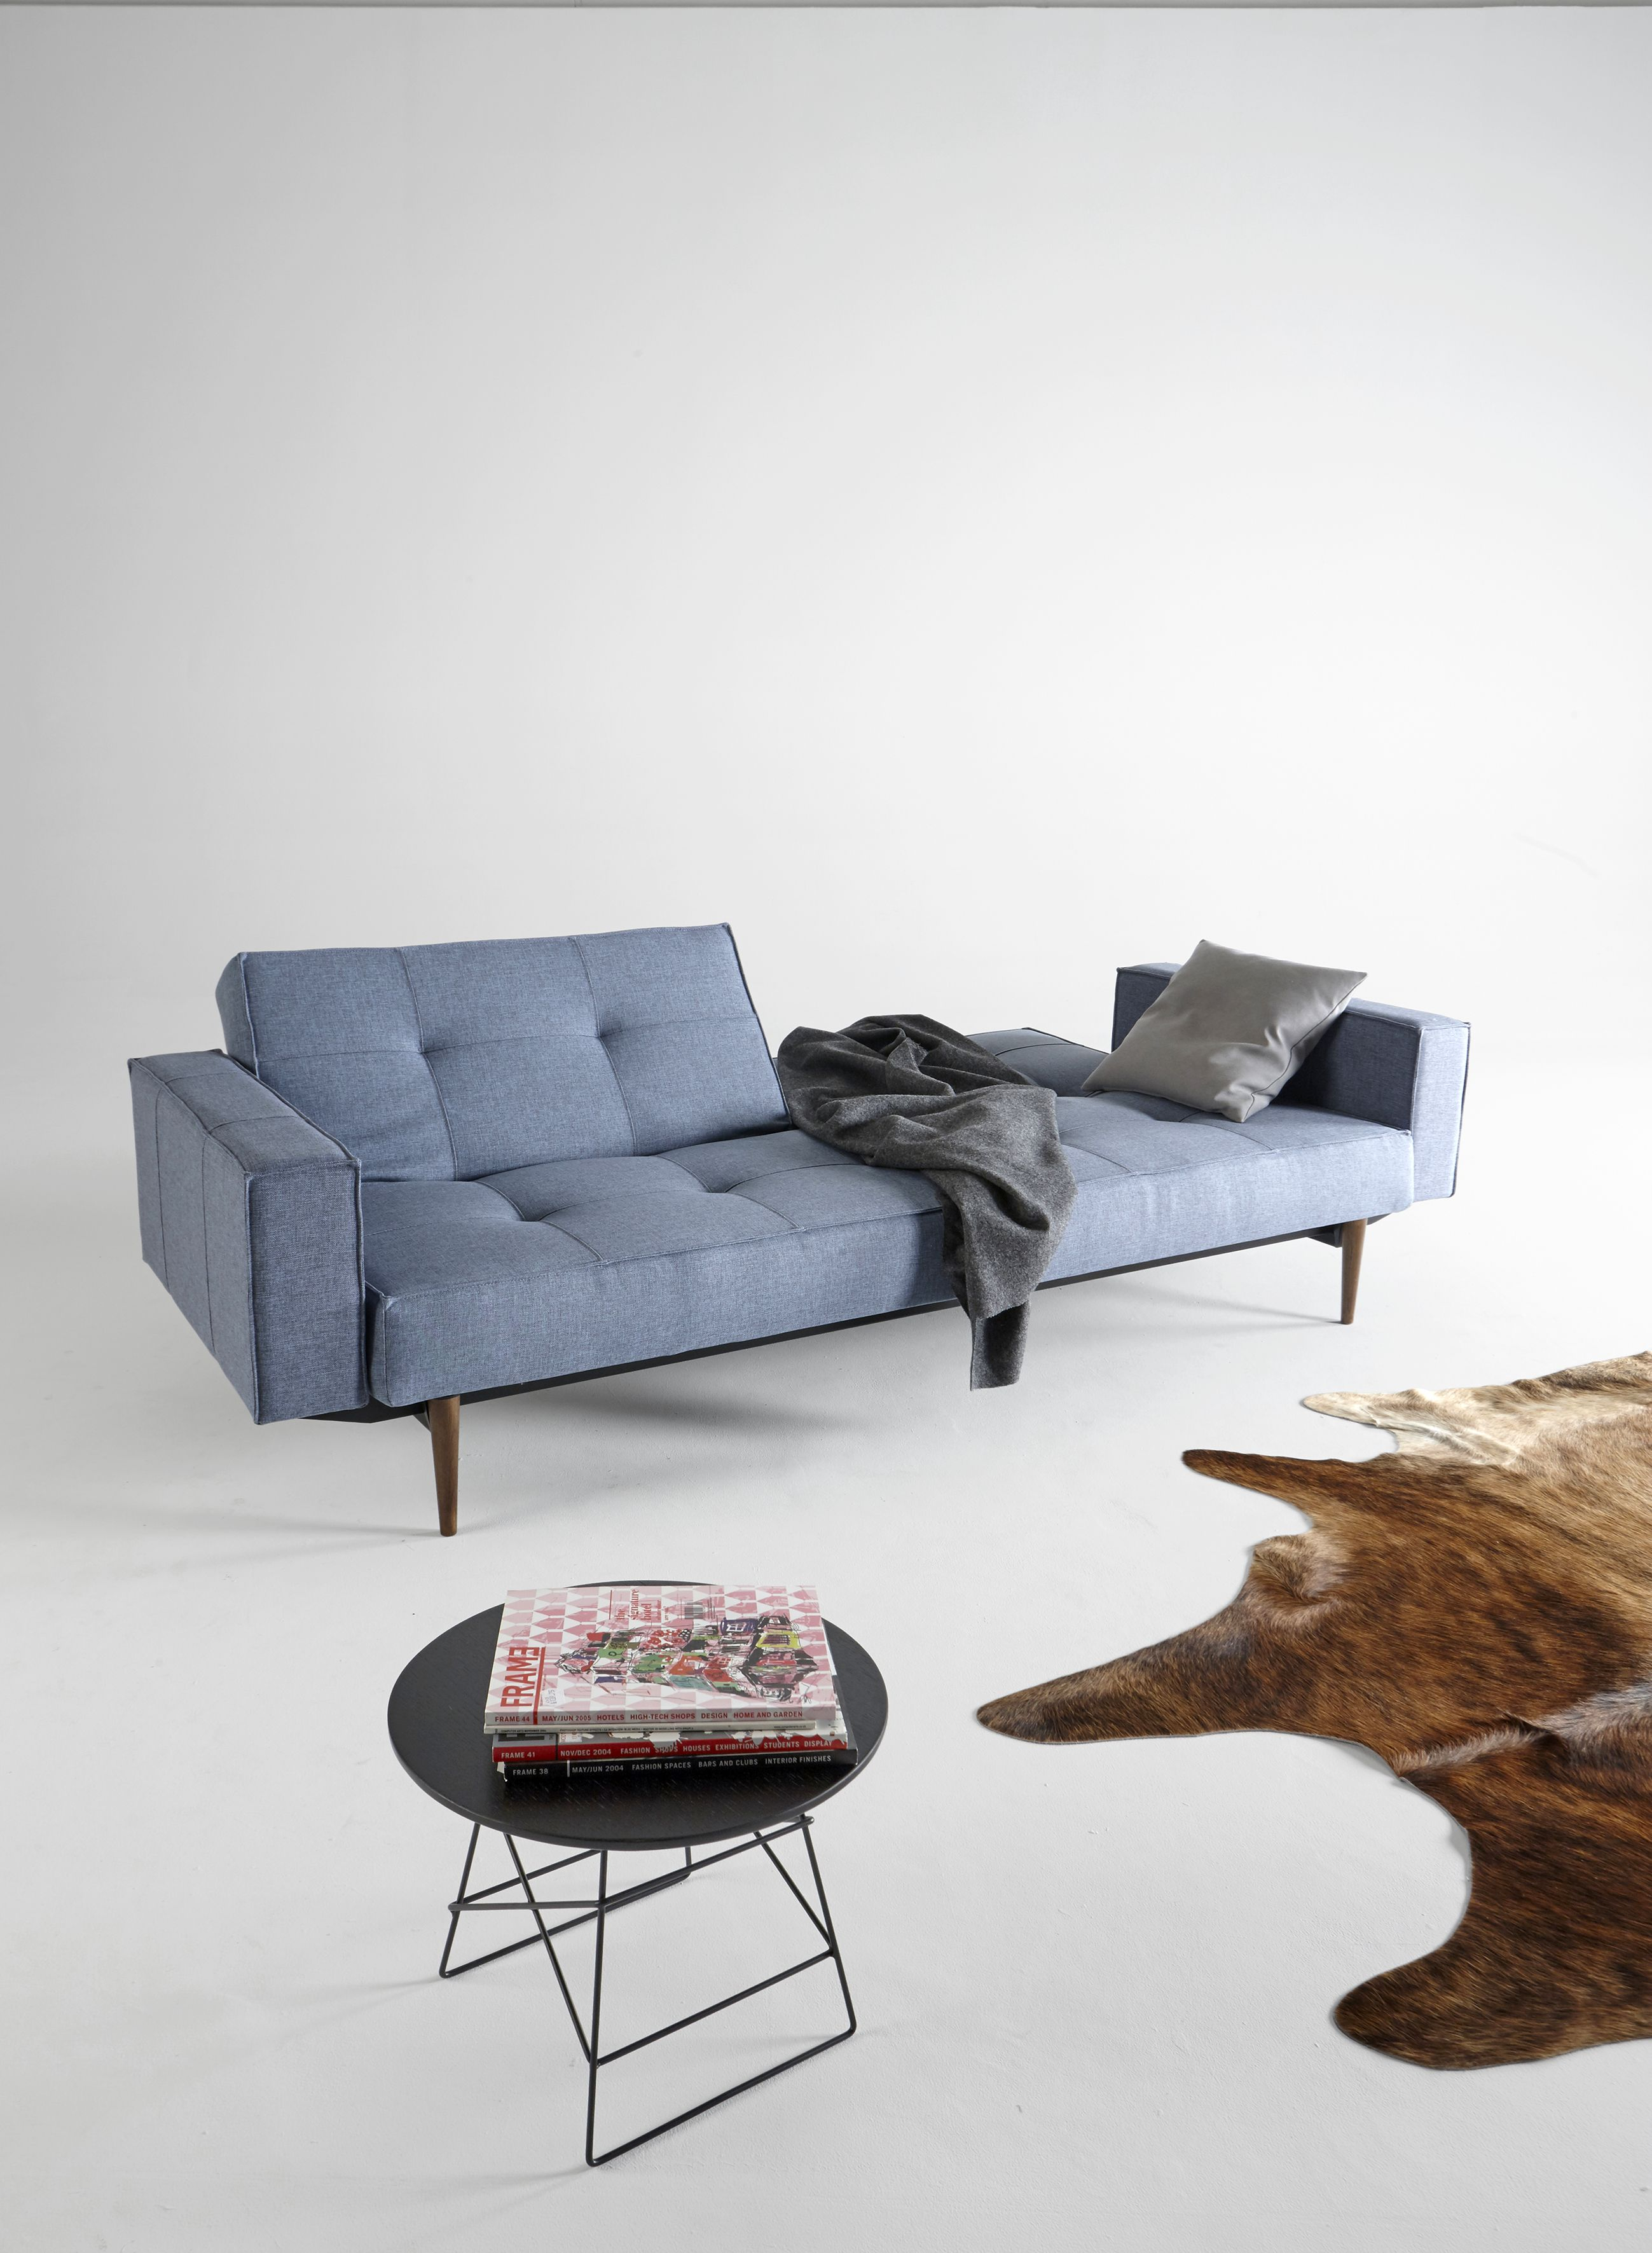 jensen lewis sleeper sofa price rose sofaworks beds decorating interior of your house splitback bed w arms mixed dance light blue by